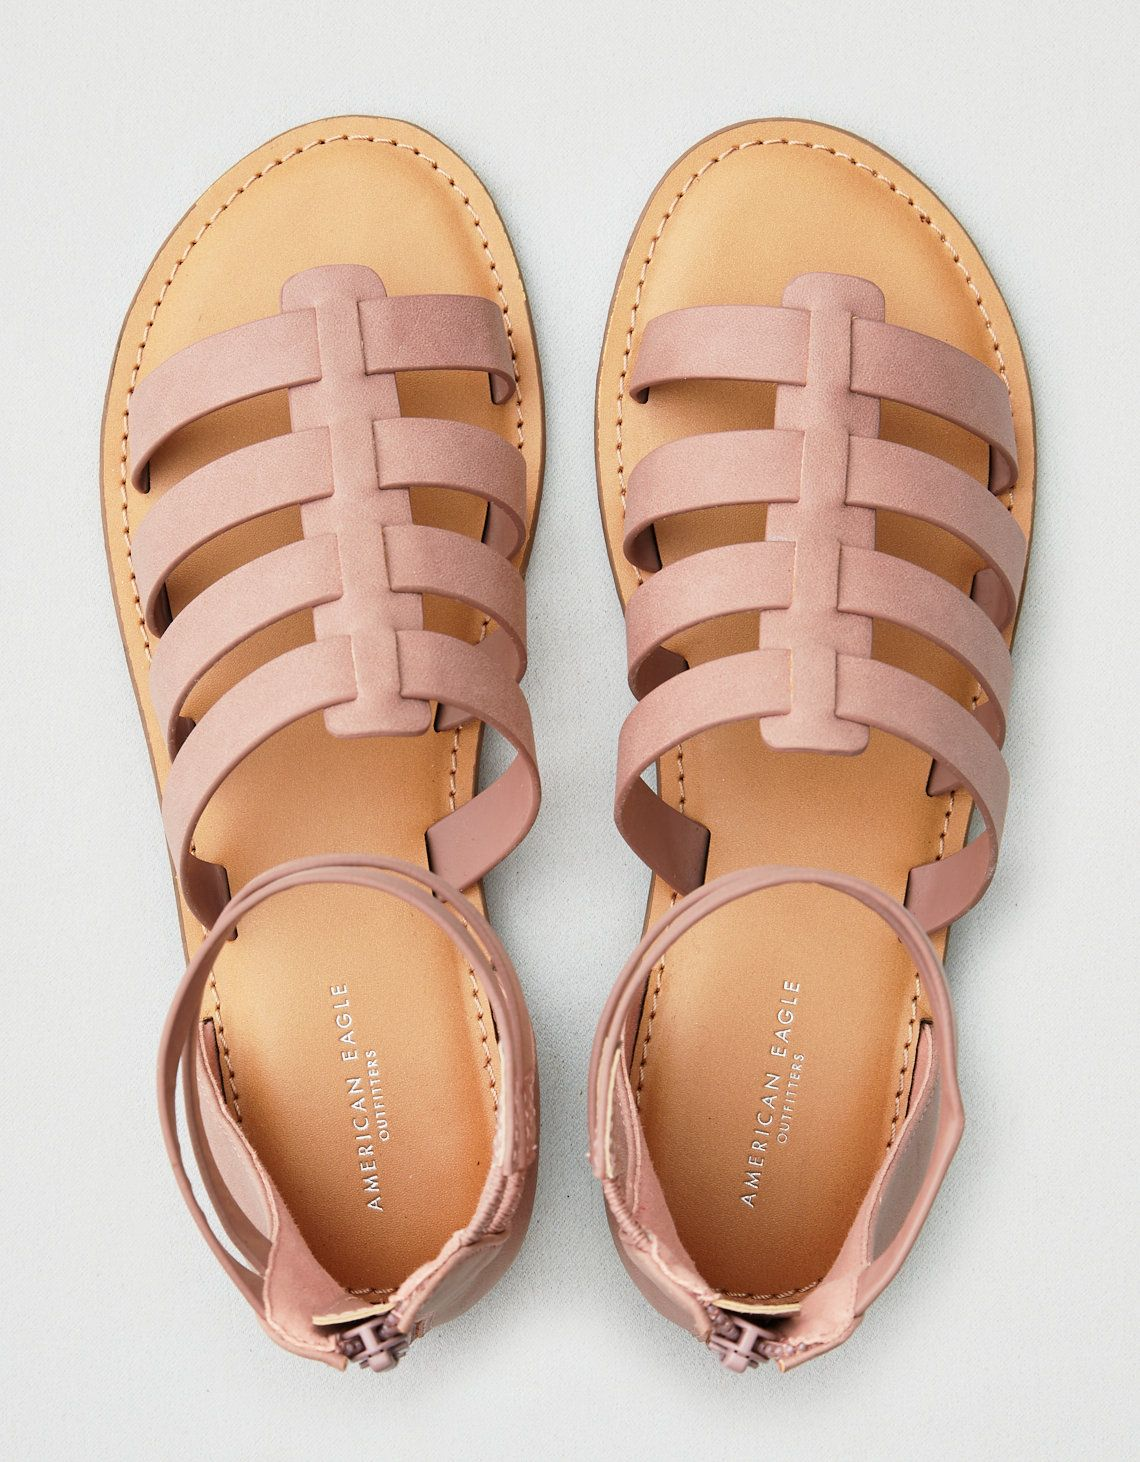 AEO Gladiator Sandal, Lavender   American Eagle Outfitters